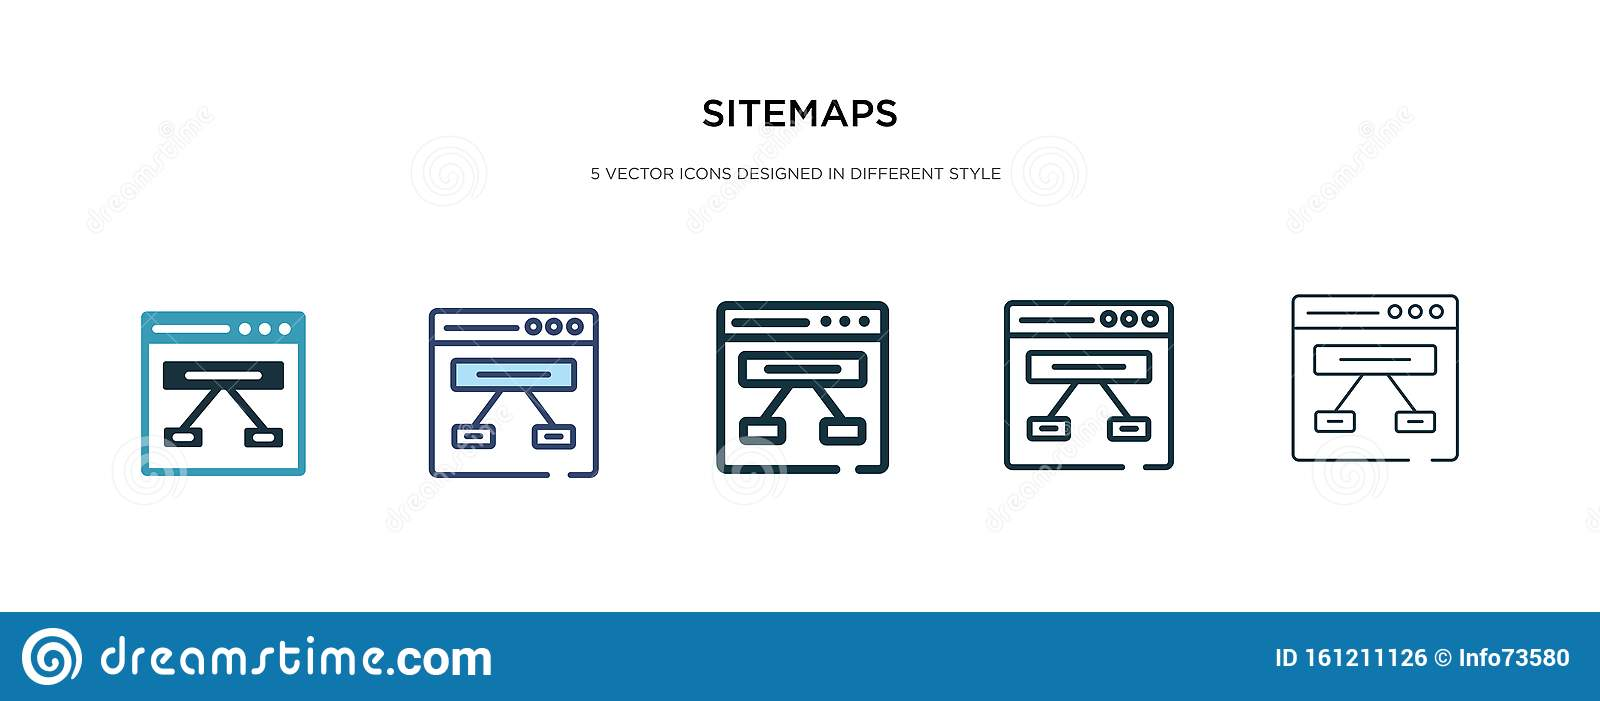 Sitemaps icon in different style vector illustration. two colored and black sitemaps vector icons designed in filled, outline,